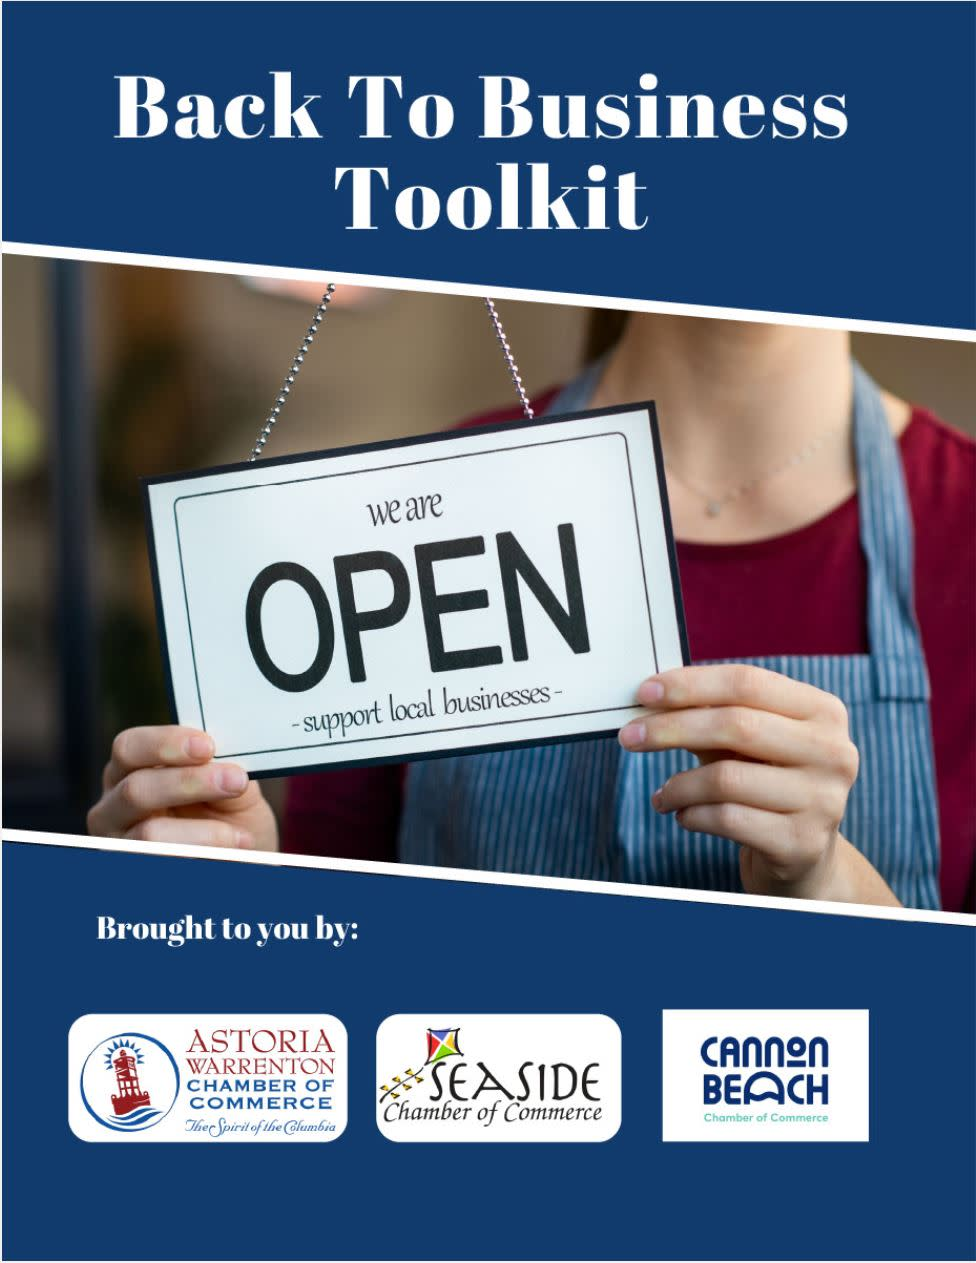 Back to Business Toolkit